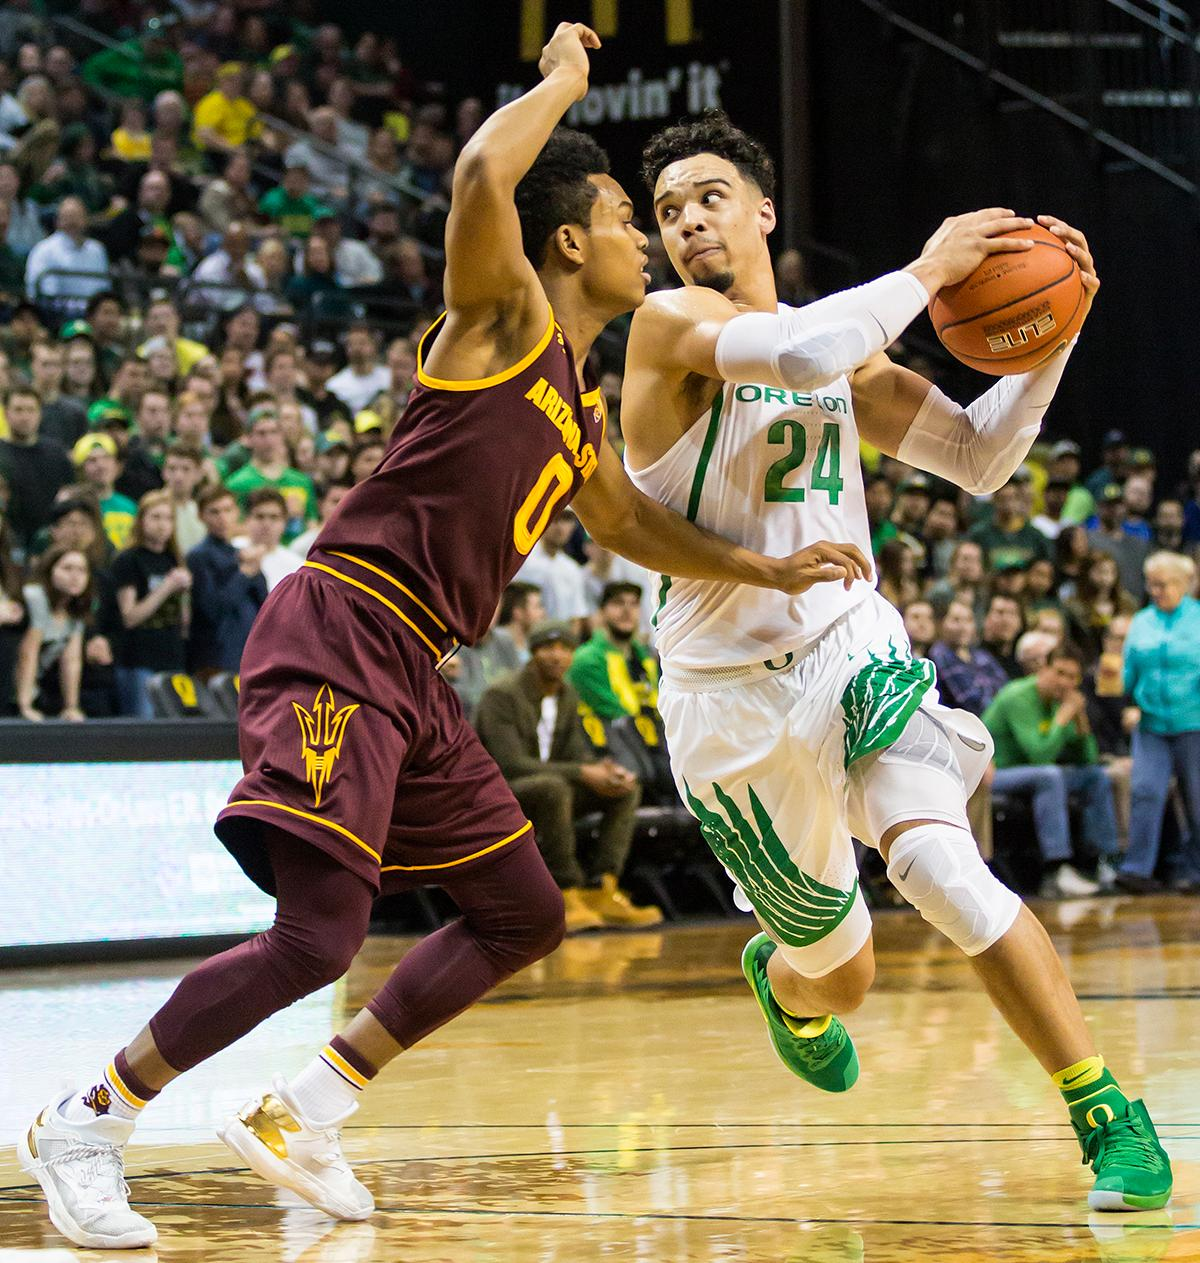 Oregon forward Dillon Brooks (#24) locks eyes with Arizona State guard Tra Holder (#0) before passing the ball. The Oregon Ducks defeated the Arizona State Sun Devils 71 to 70. Photo by Ben Lonergan, Oregon News Lab